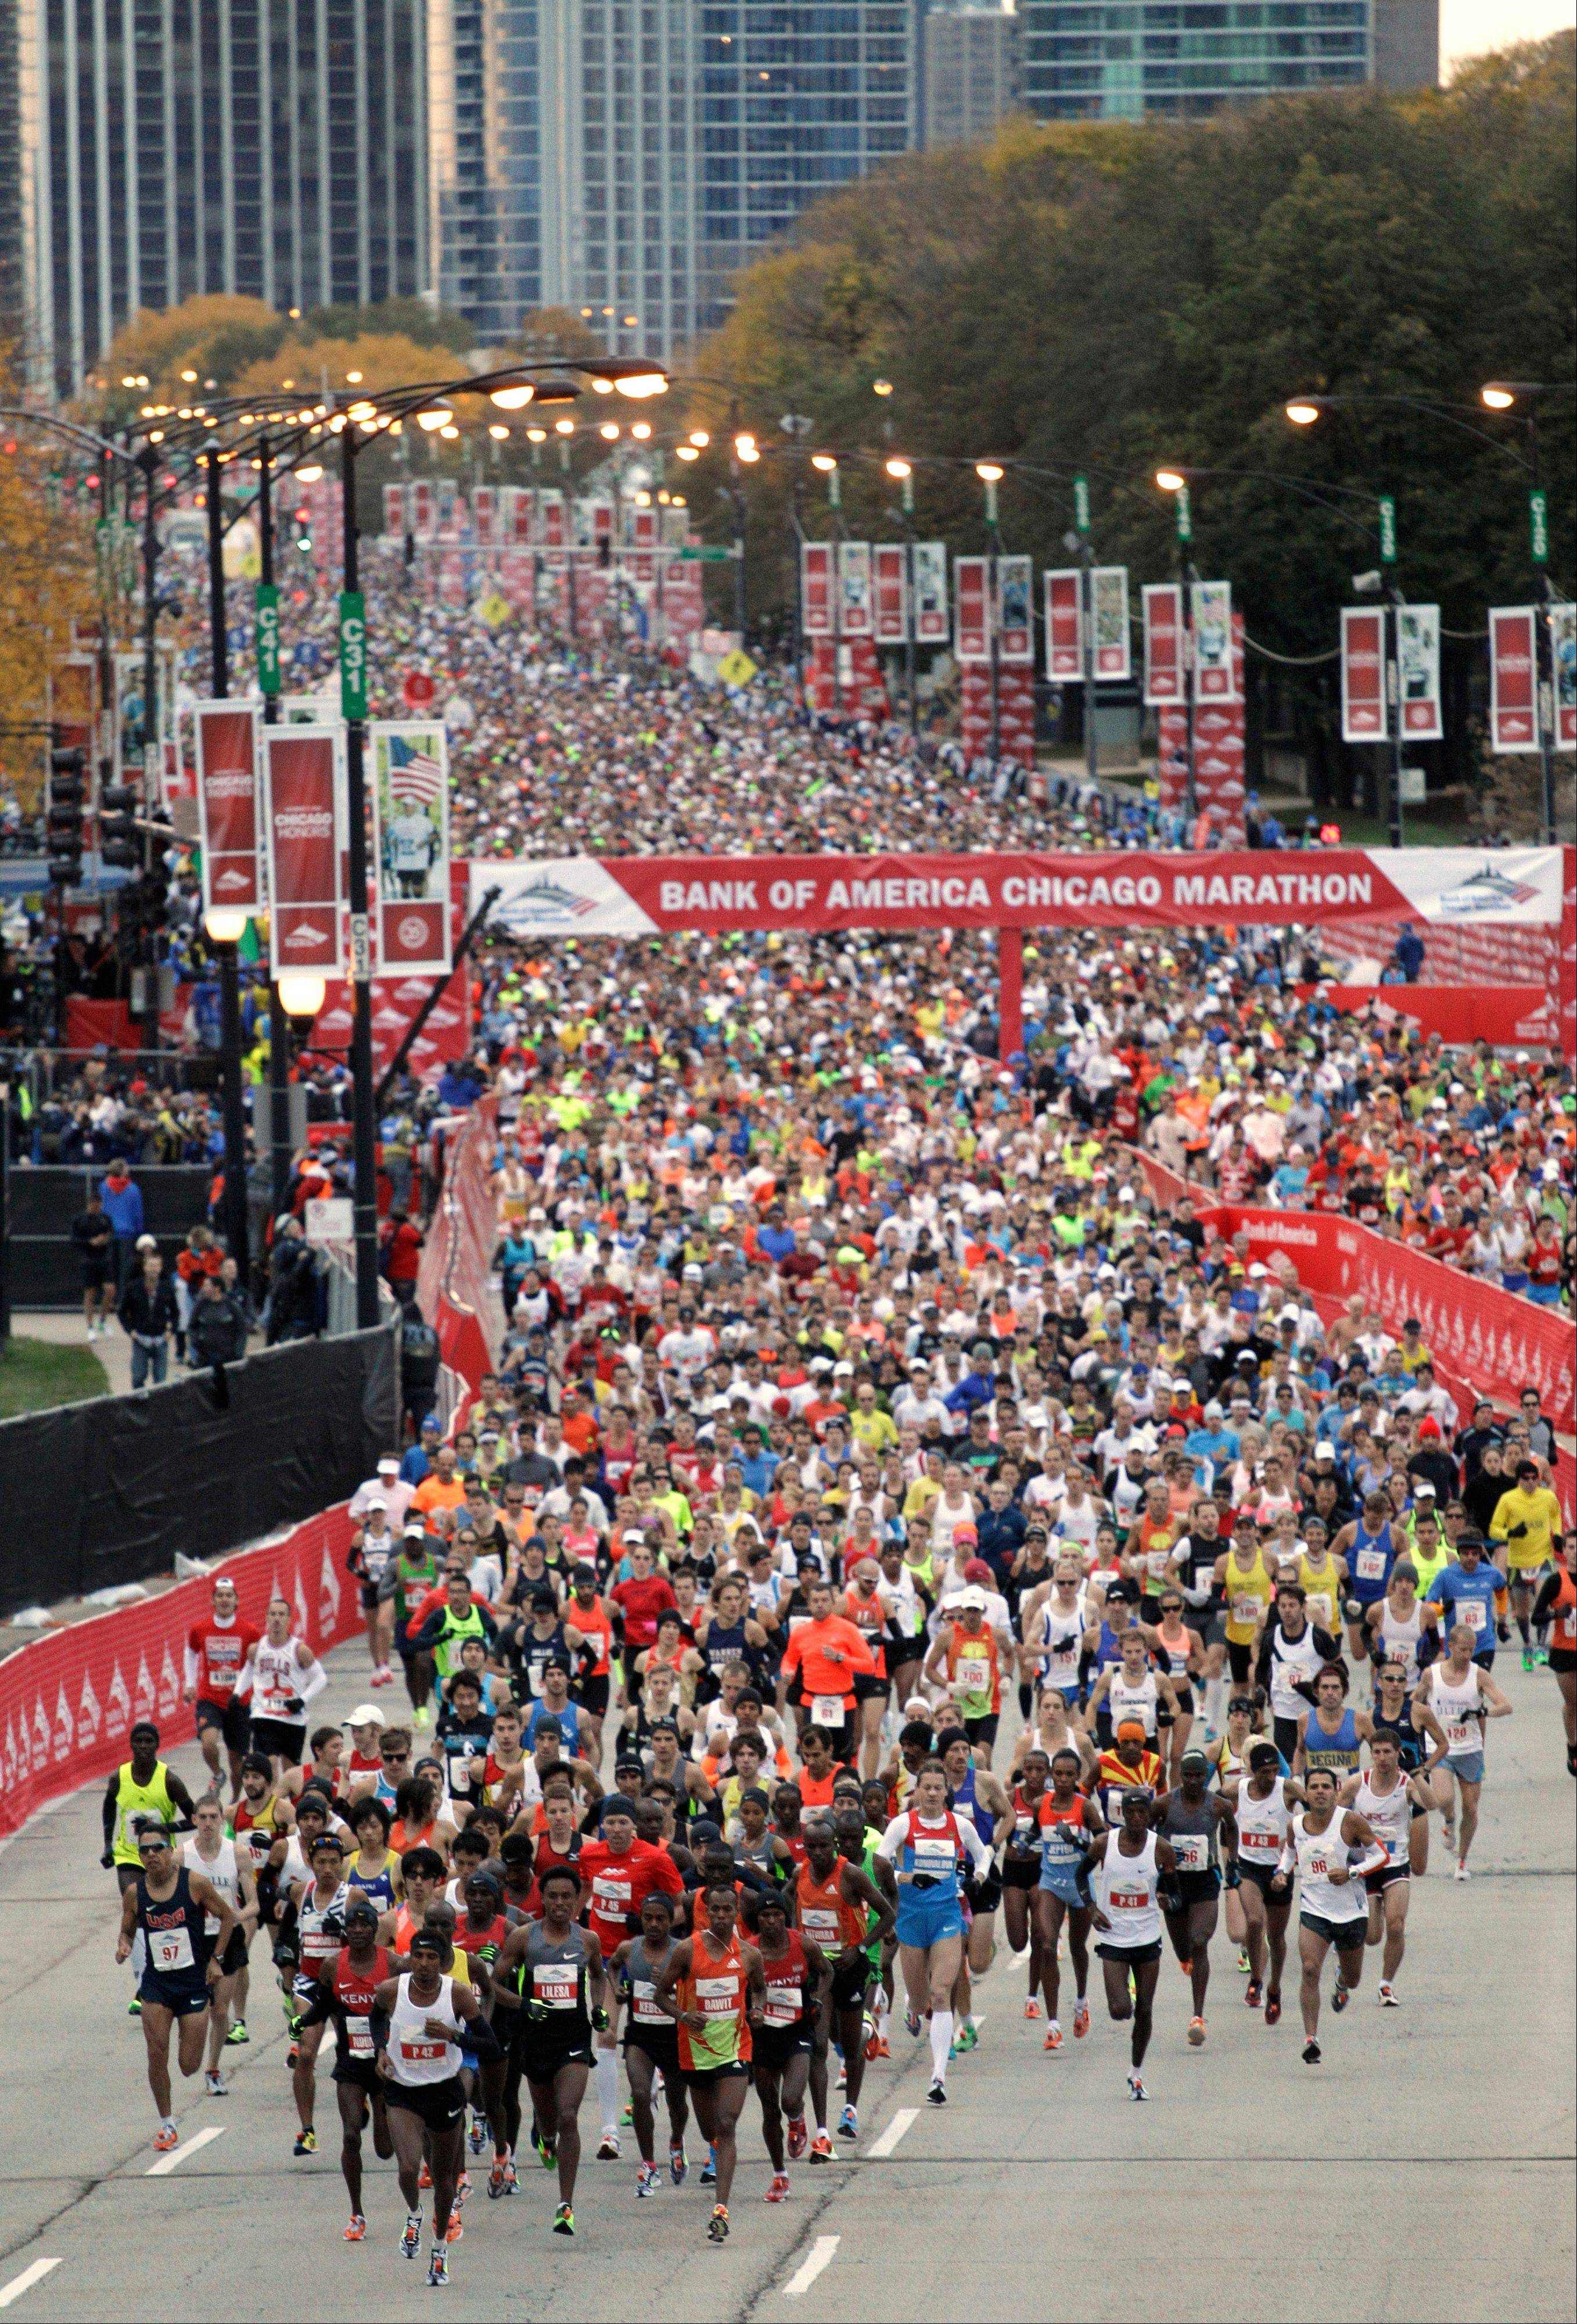 Runners leave the starting line during the 2012 Chicago Marathon. This year, 45,000 runners from around the world and the U.S. will be in the 26.2-mile race.